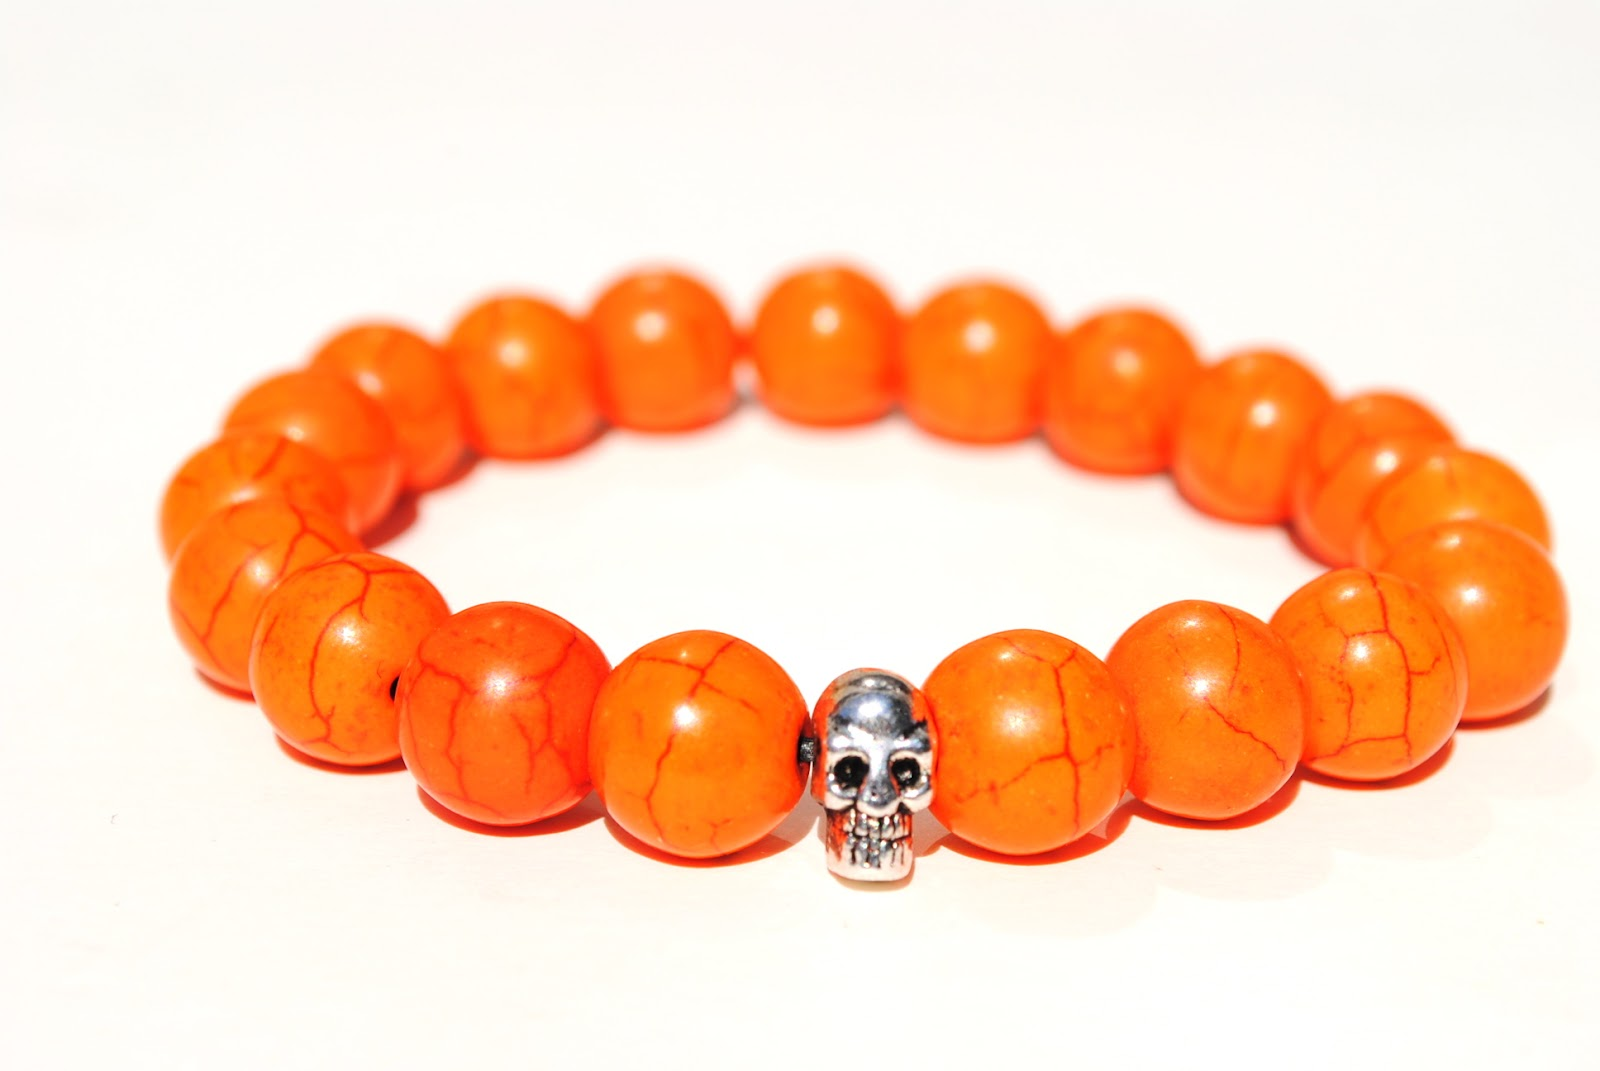 Made For Men Orange Skull Boybeads Bracelets